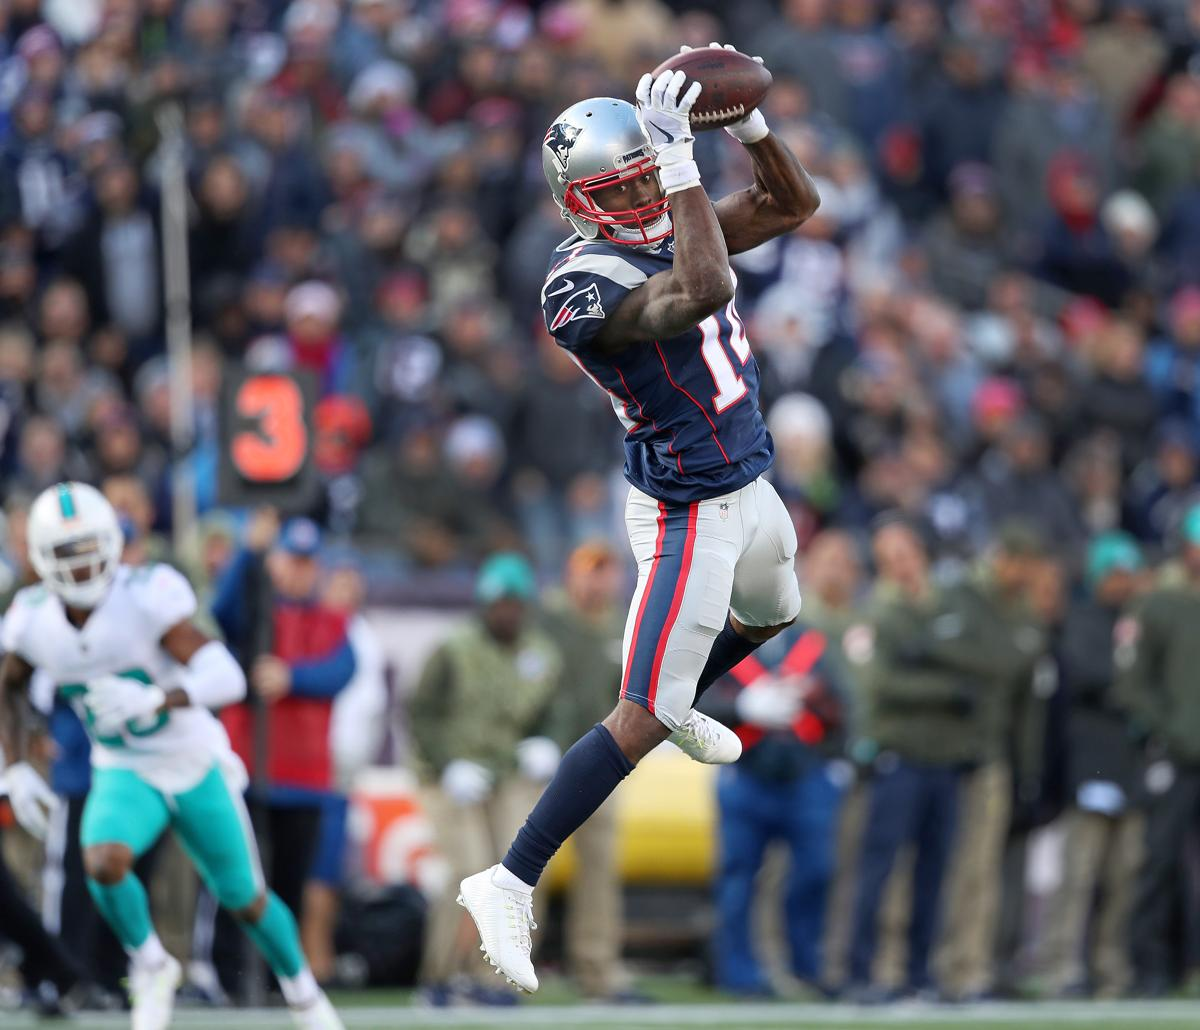 Patriots Brandin Cooks finding the favored route